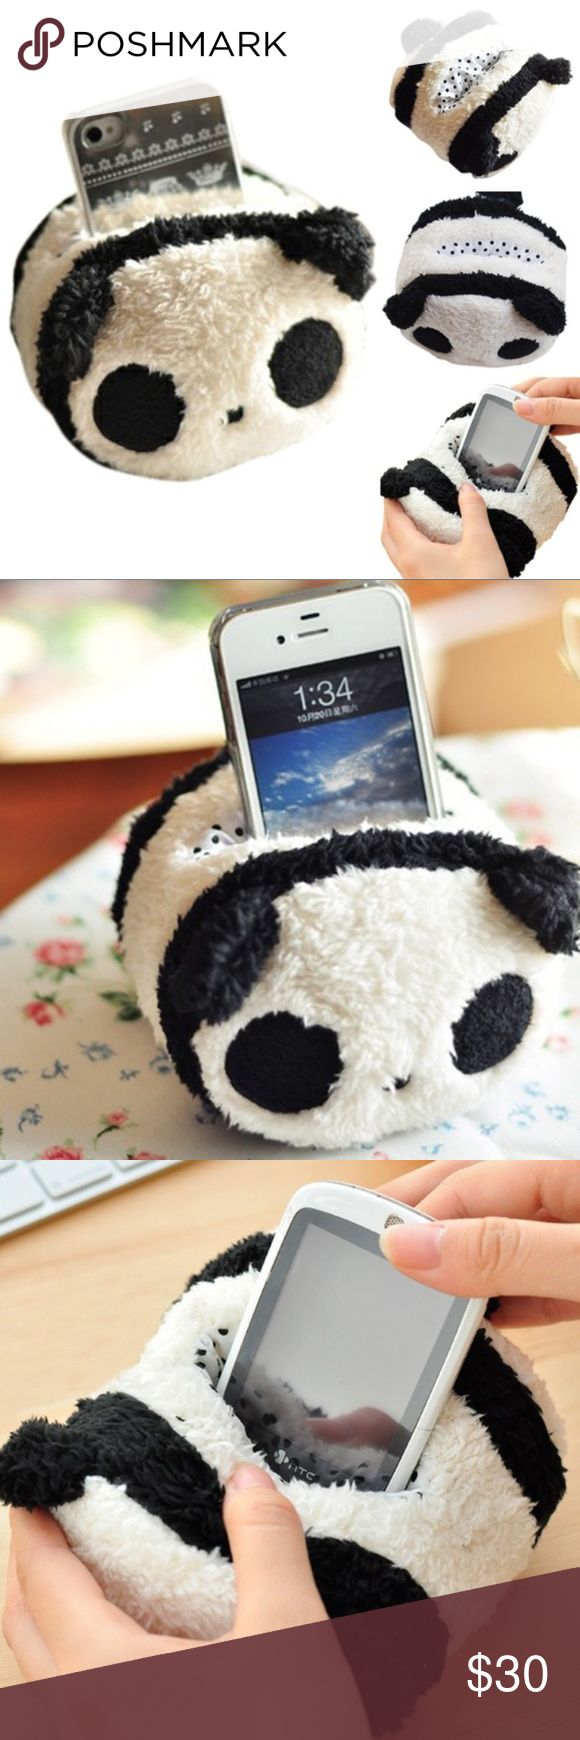 "JUST IN! NEW! 🐼 Panda Plush Cell Phone Holder Super Cute 🐼 Panda Plush Cell Phone Holder & Stand. Cute design, soft & fluffy, and protects your phone! Put on table, bed, or any other place as decoration. Makes a perfect gift! 100% Brand New & Good Quality. BUNDLE & SAVE!  Approx. Size: 12*11.5*8.5cm/ 4.7""*4.5""*3.3""  Fits Phone Size: Phone width max to 7cm, most of latest phones are available, such as: Samsung S4, iPhone 6s, LG Nexus 5, HTC Desire 500, BlackBerry Z30, etc. Accessories"